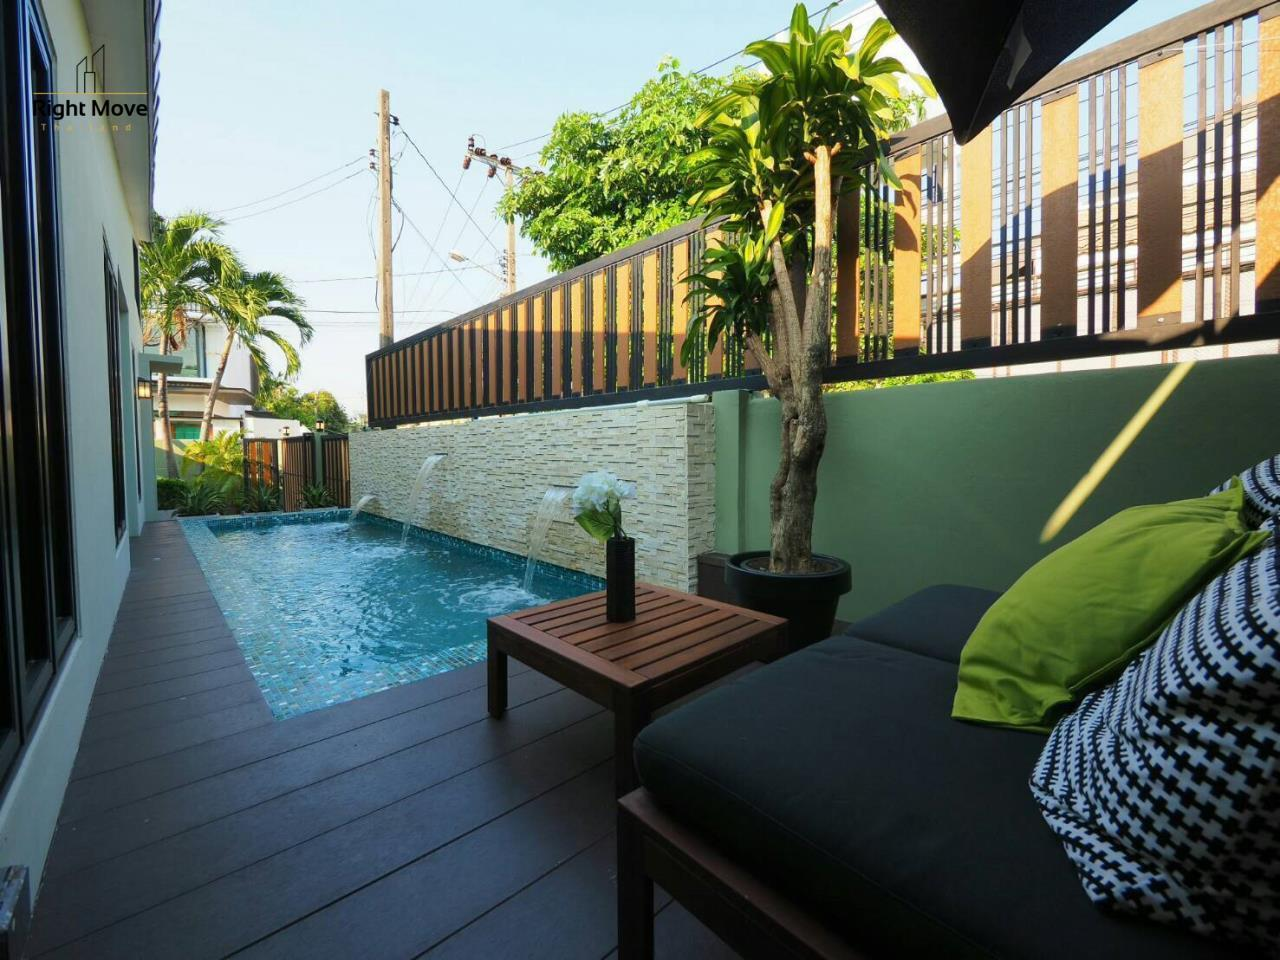 Right Move Thailand Agency's HR874 Single House For Sale 16,500,000 THB 2 Bedrooms 150 Sqm 1